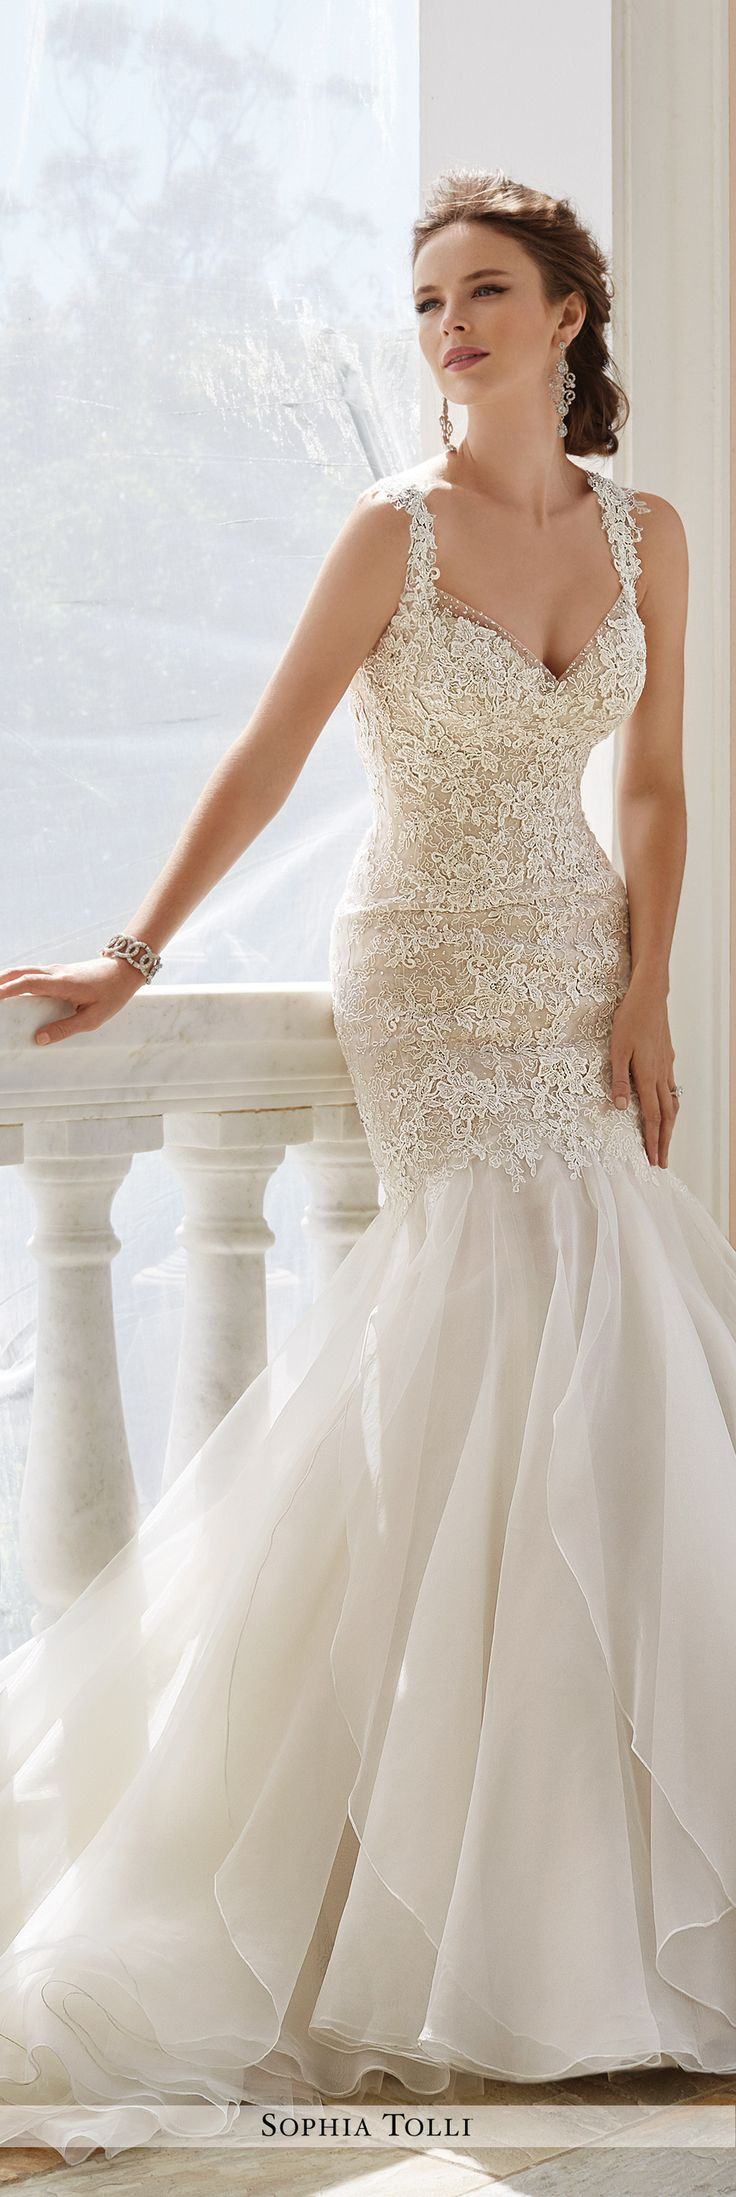 wedding dresses trumpet wedding dresses Sophia Tolli Fall Wedding Gown Collection Style No Y Aprilia sleeveless lace